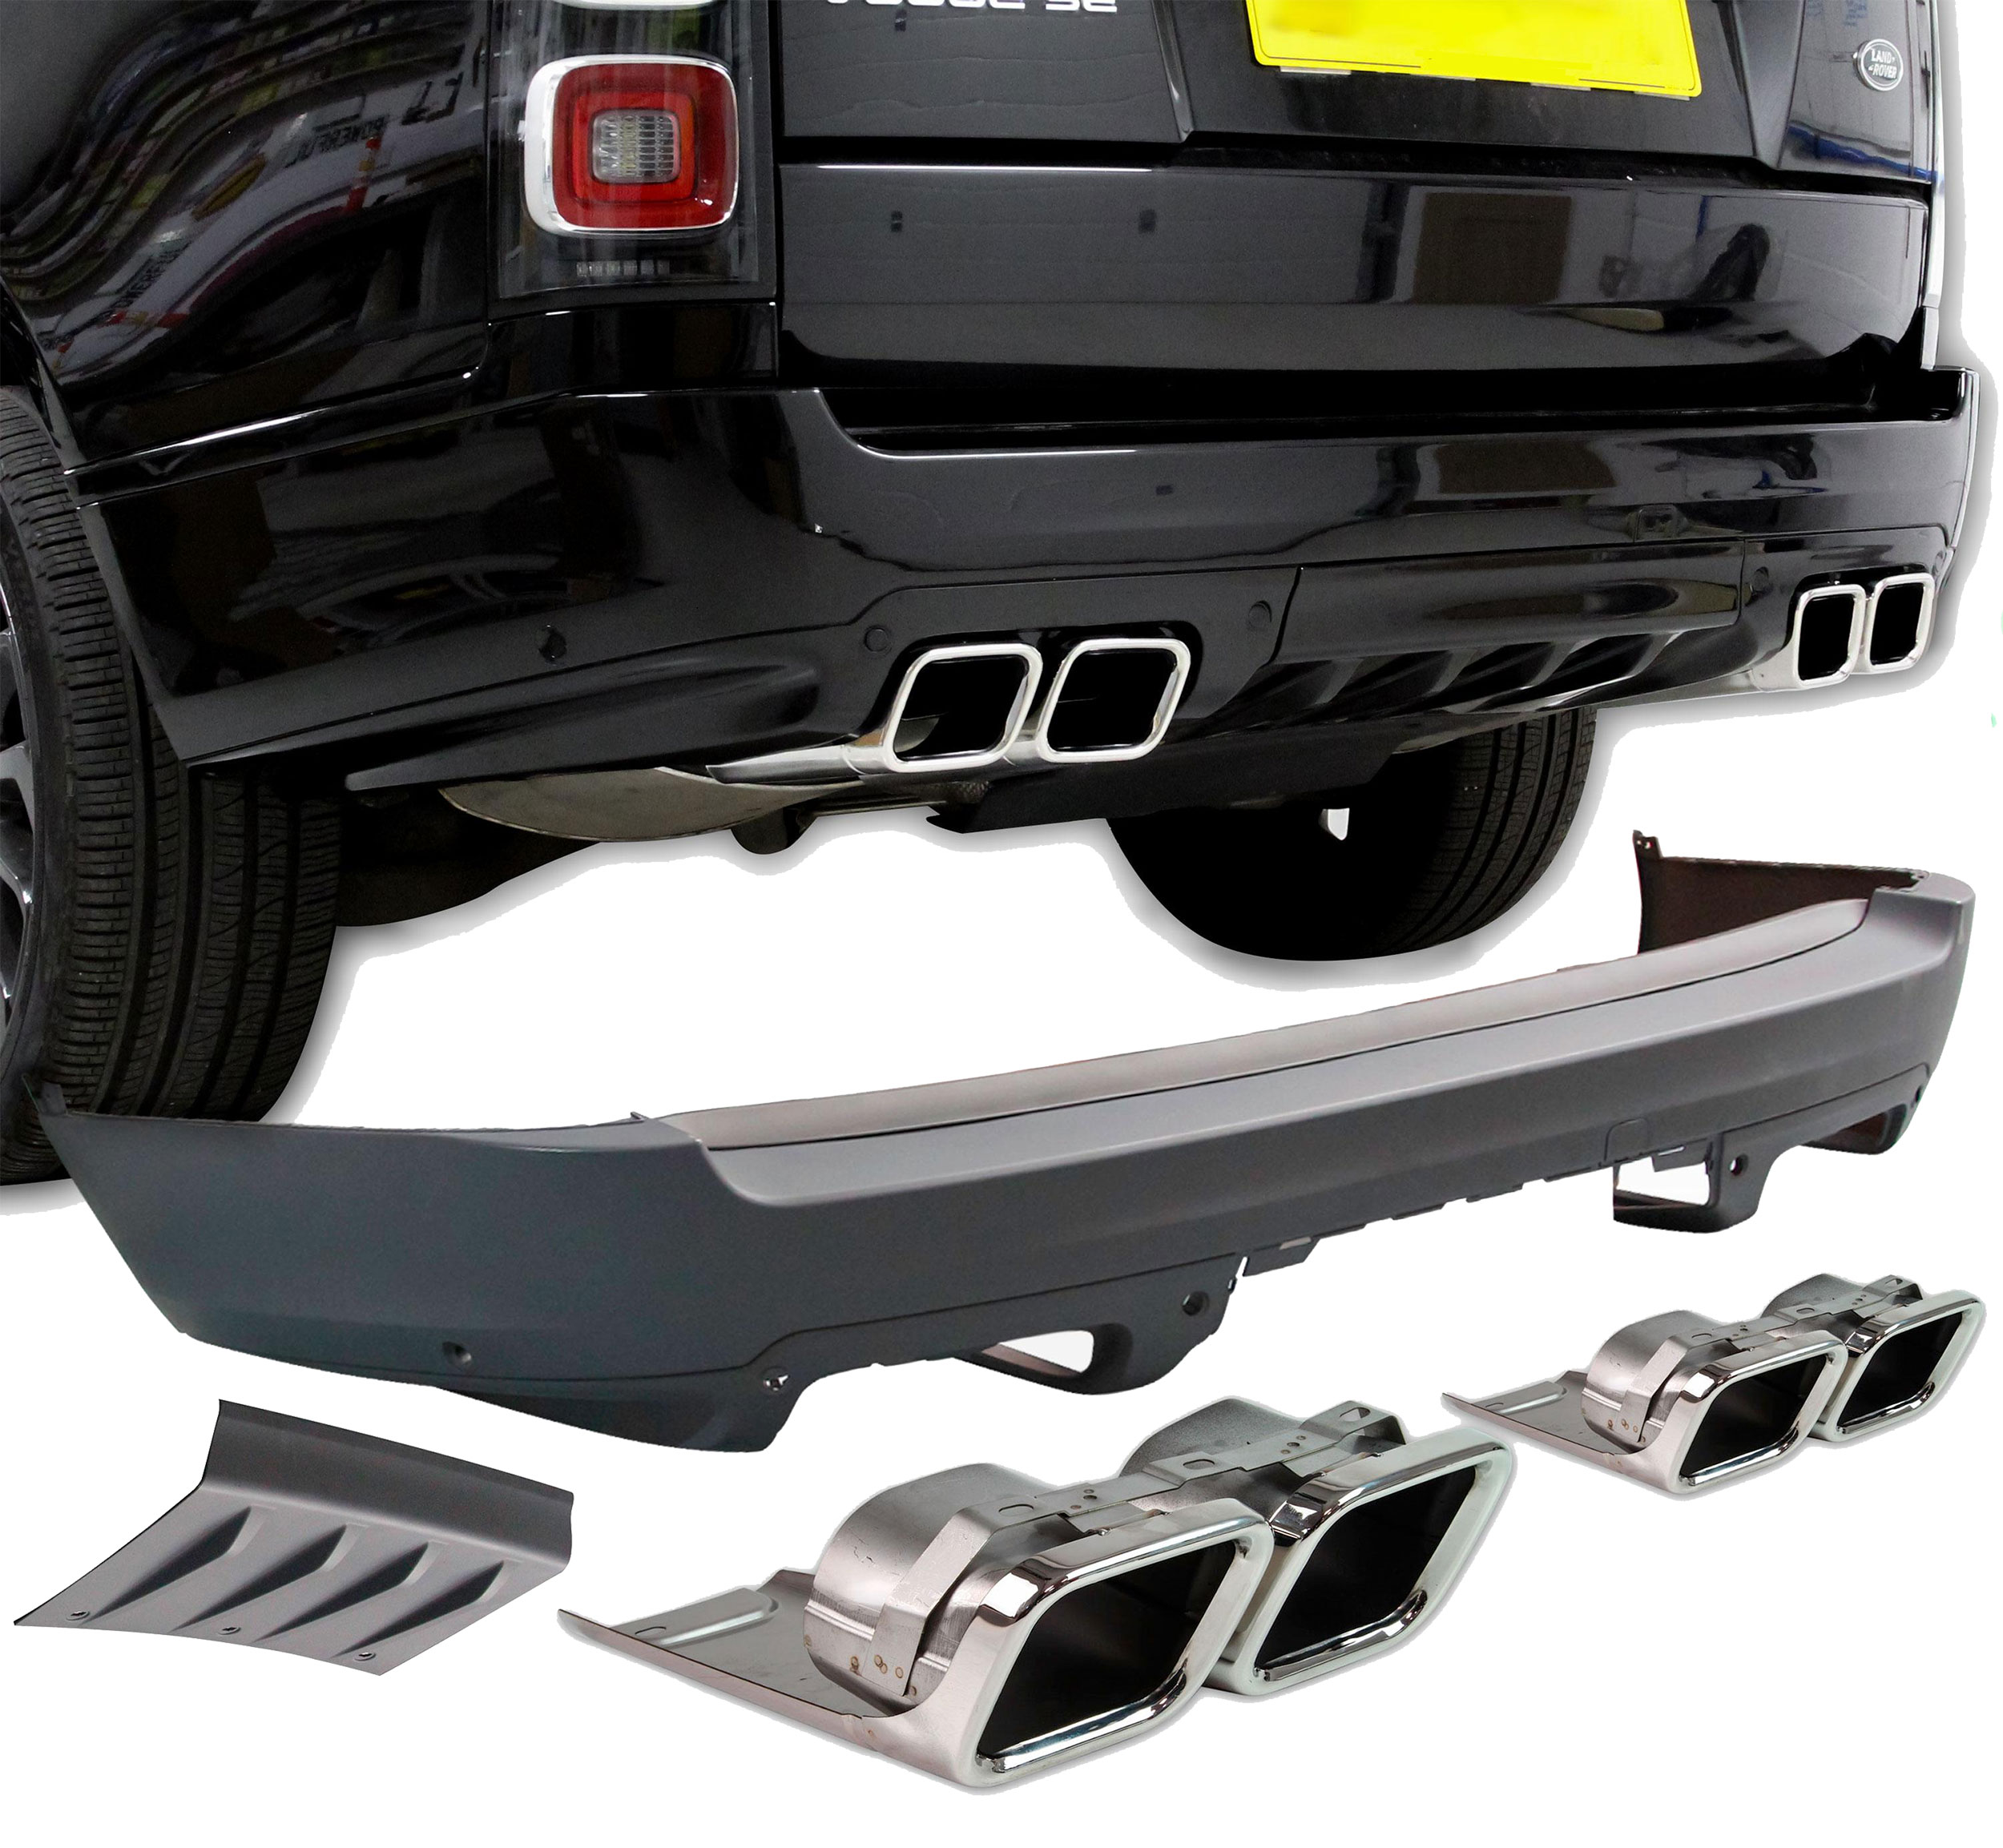 Now available: Range Rover L405 - SVO Style Rear Bumper Upgrade Kit